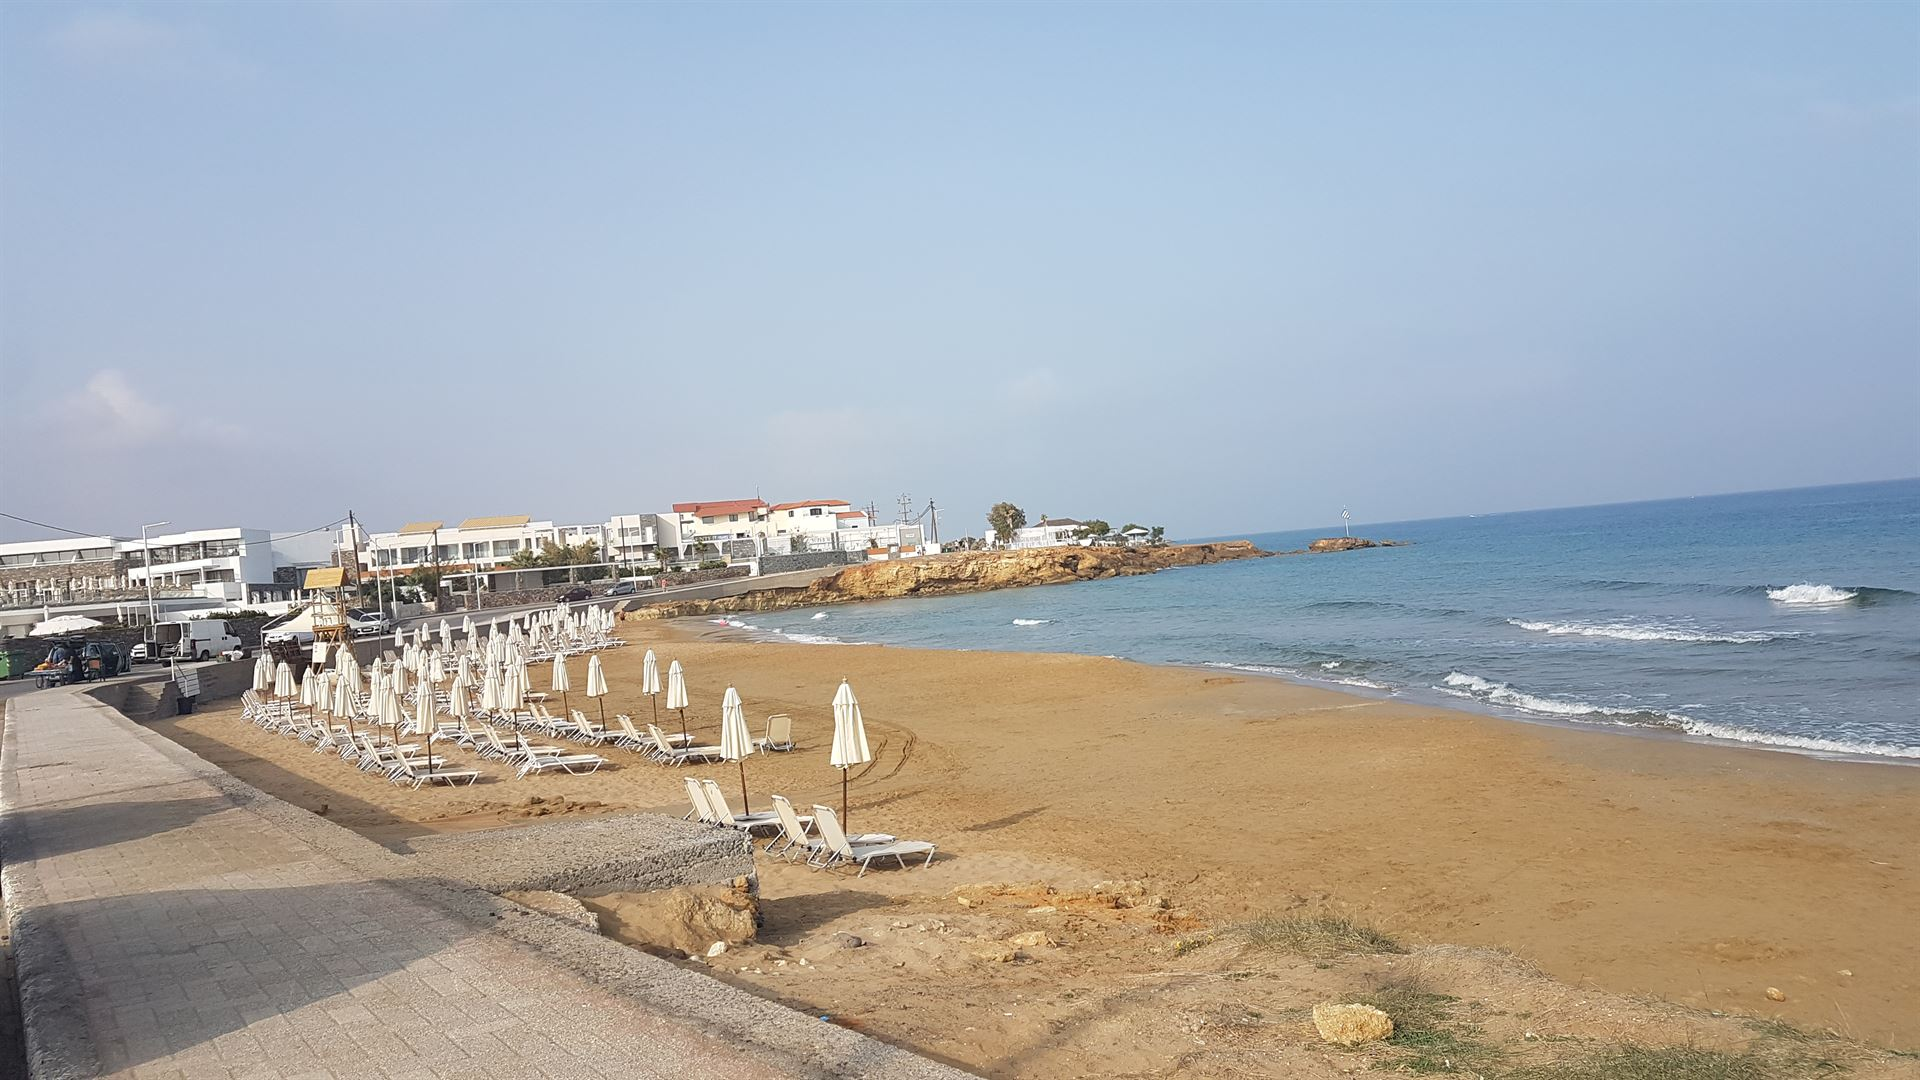 https://media.putovanjepomeri.com/2019/03/Kaissa-beach.jpg